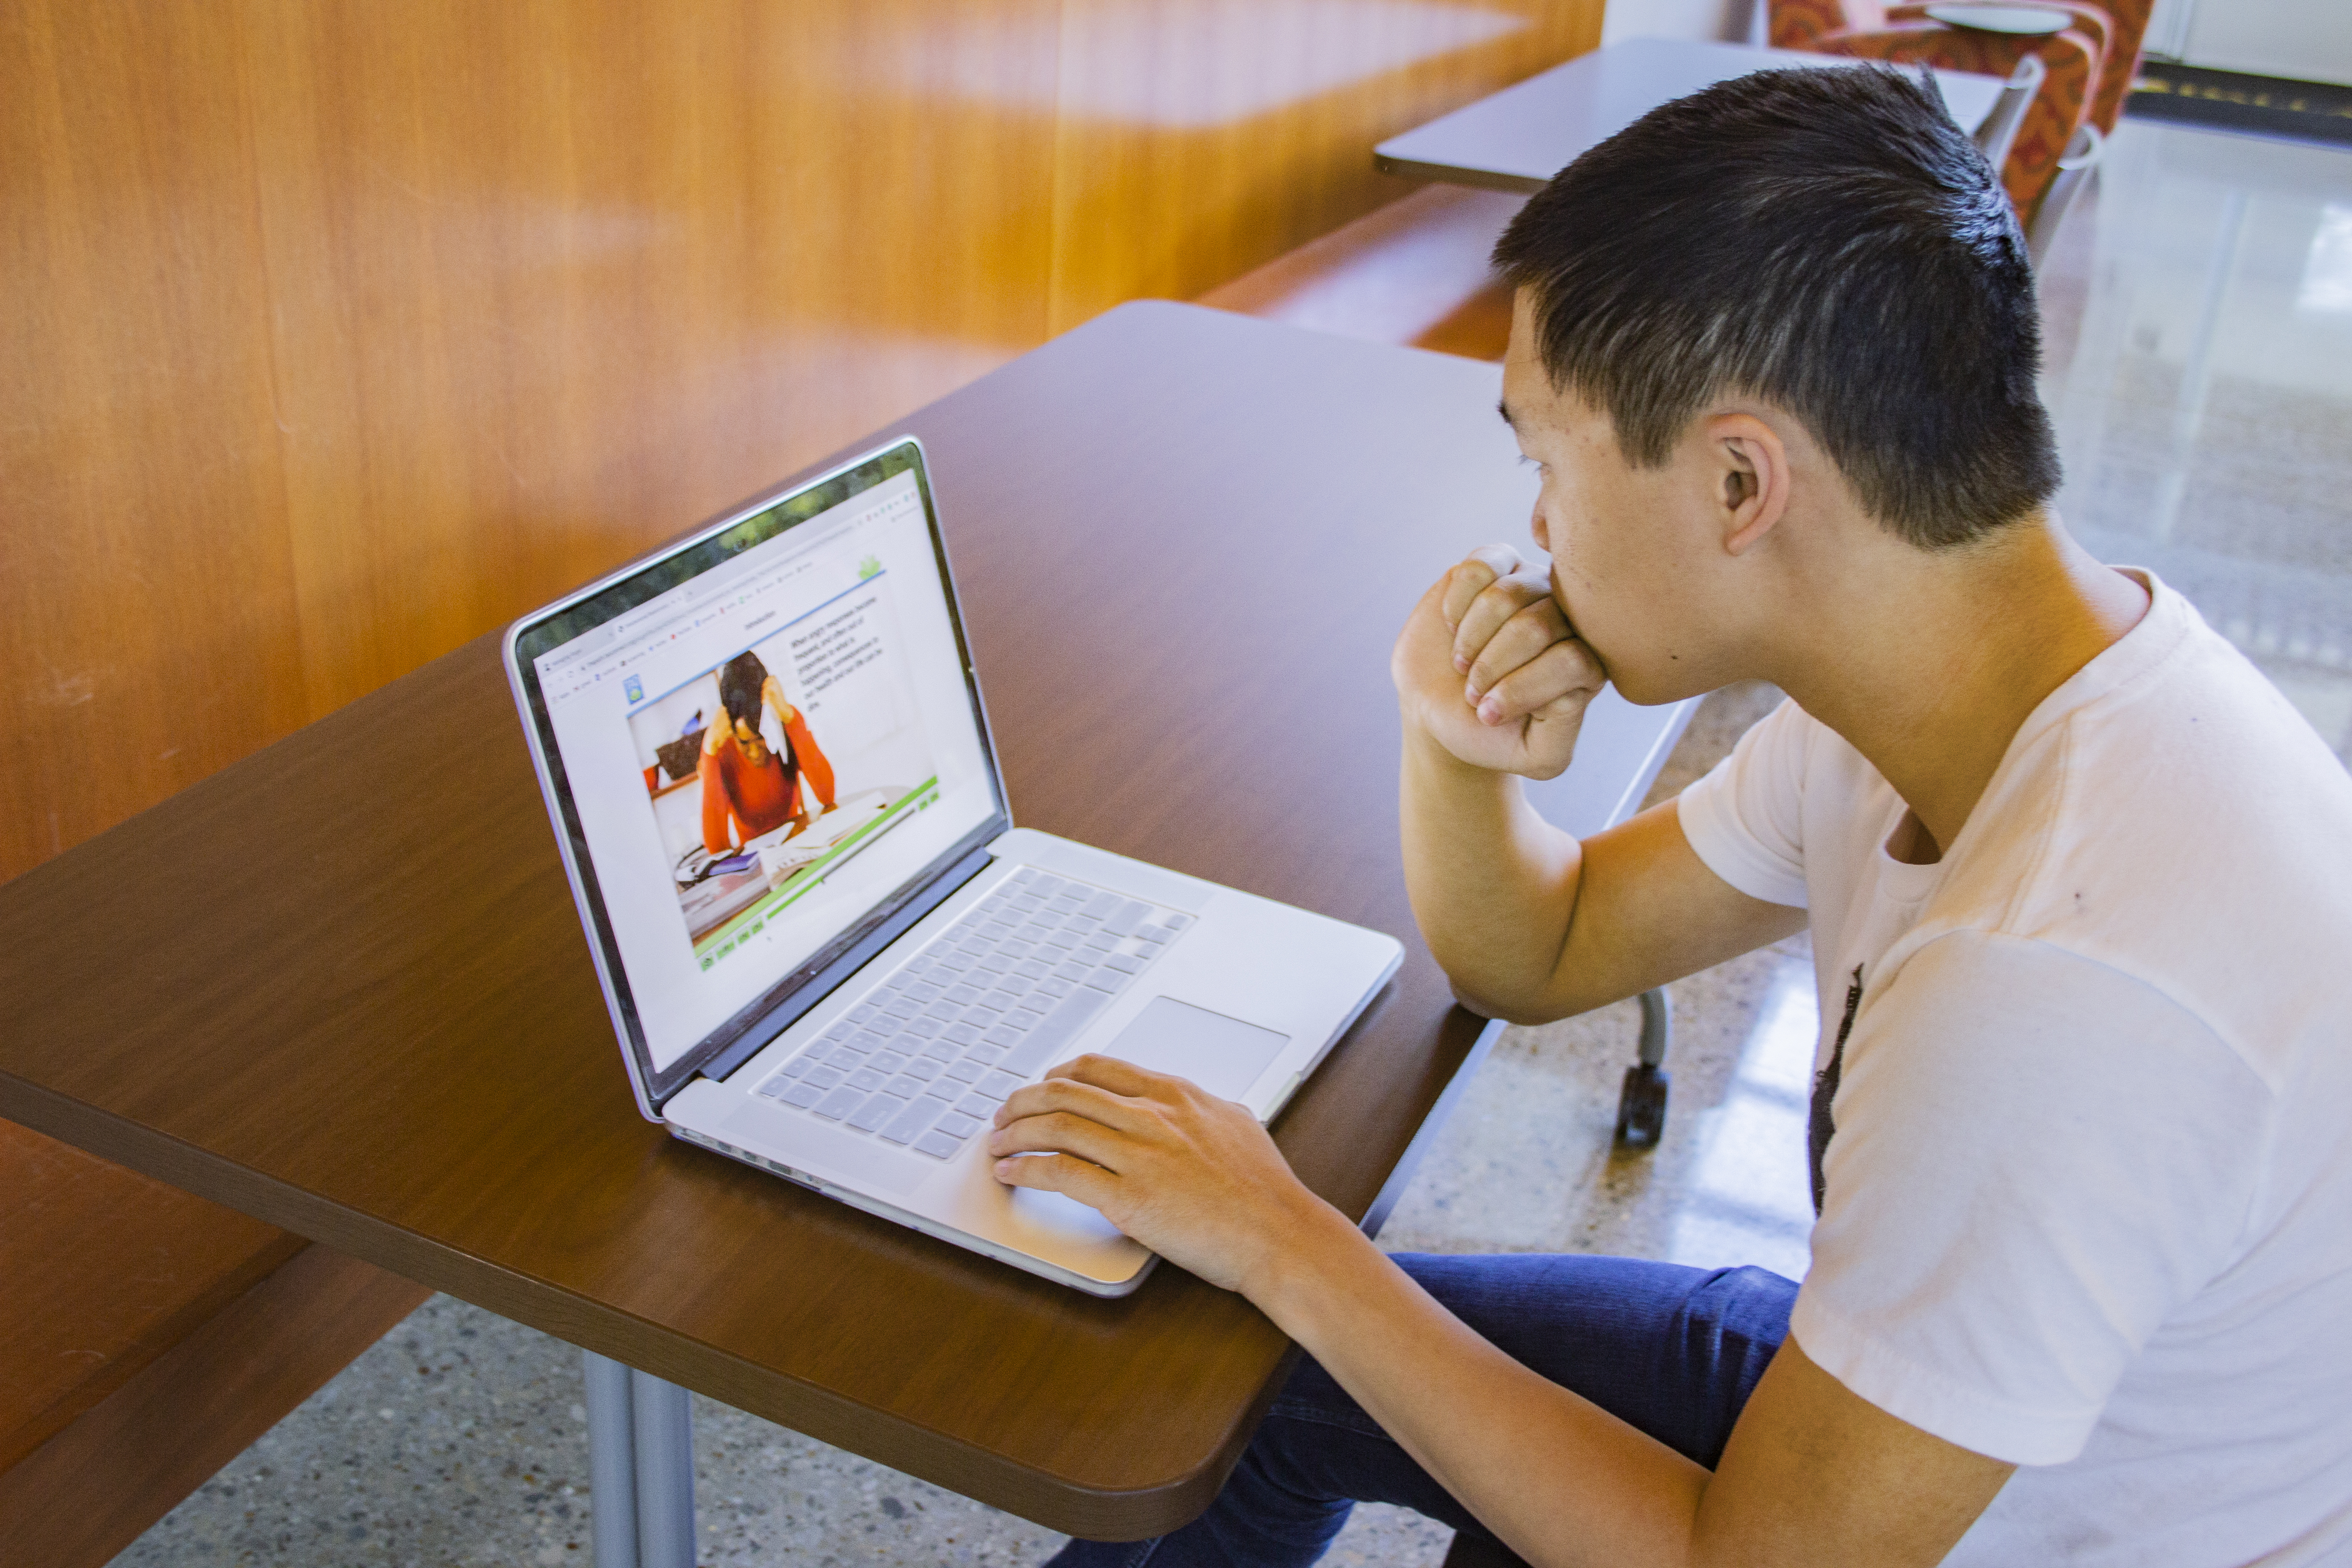 Online Therapy Offers Self-Help Solutions